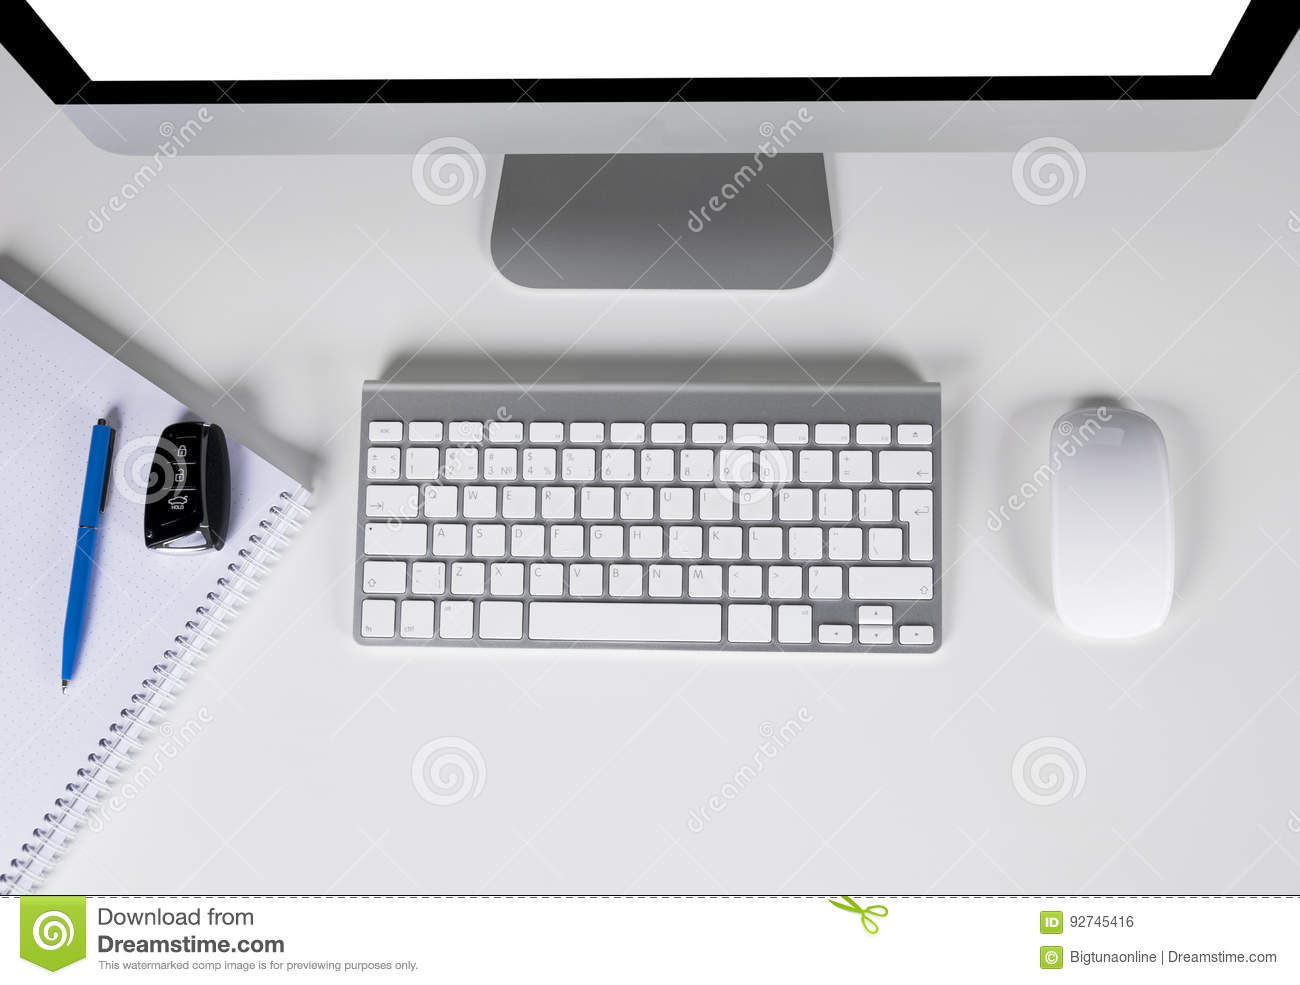 how to connect wireless keyboard to computer